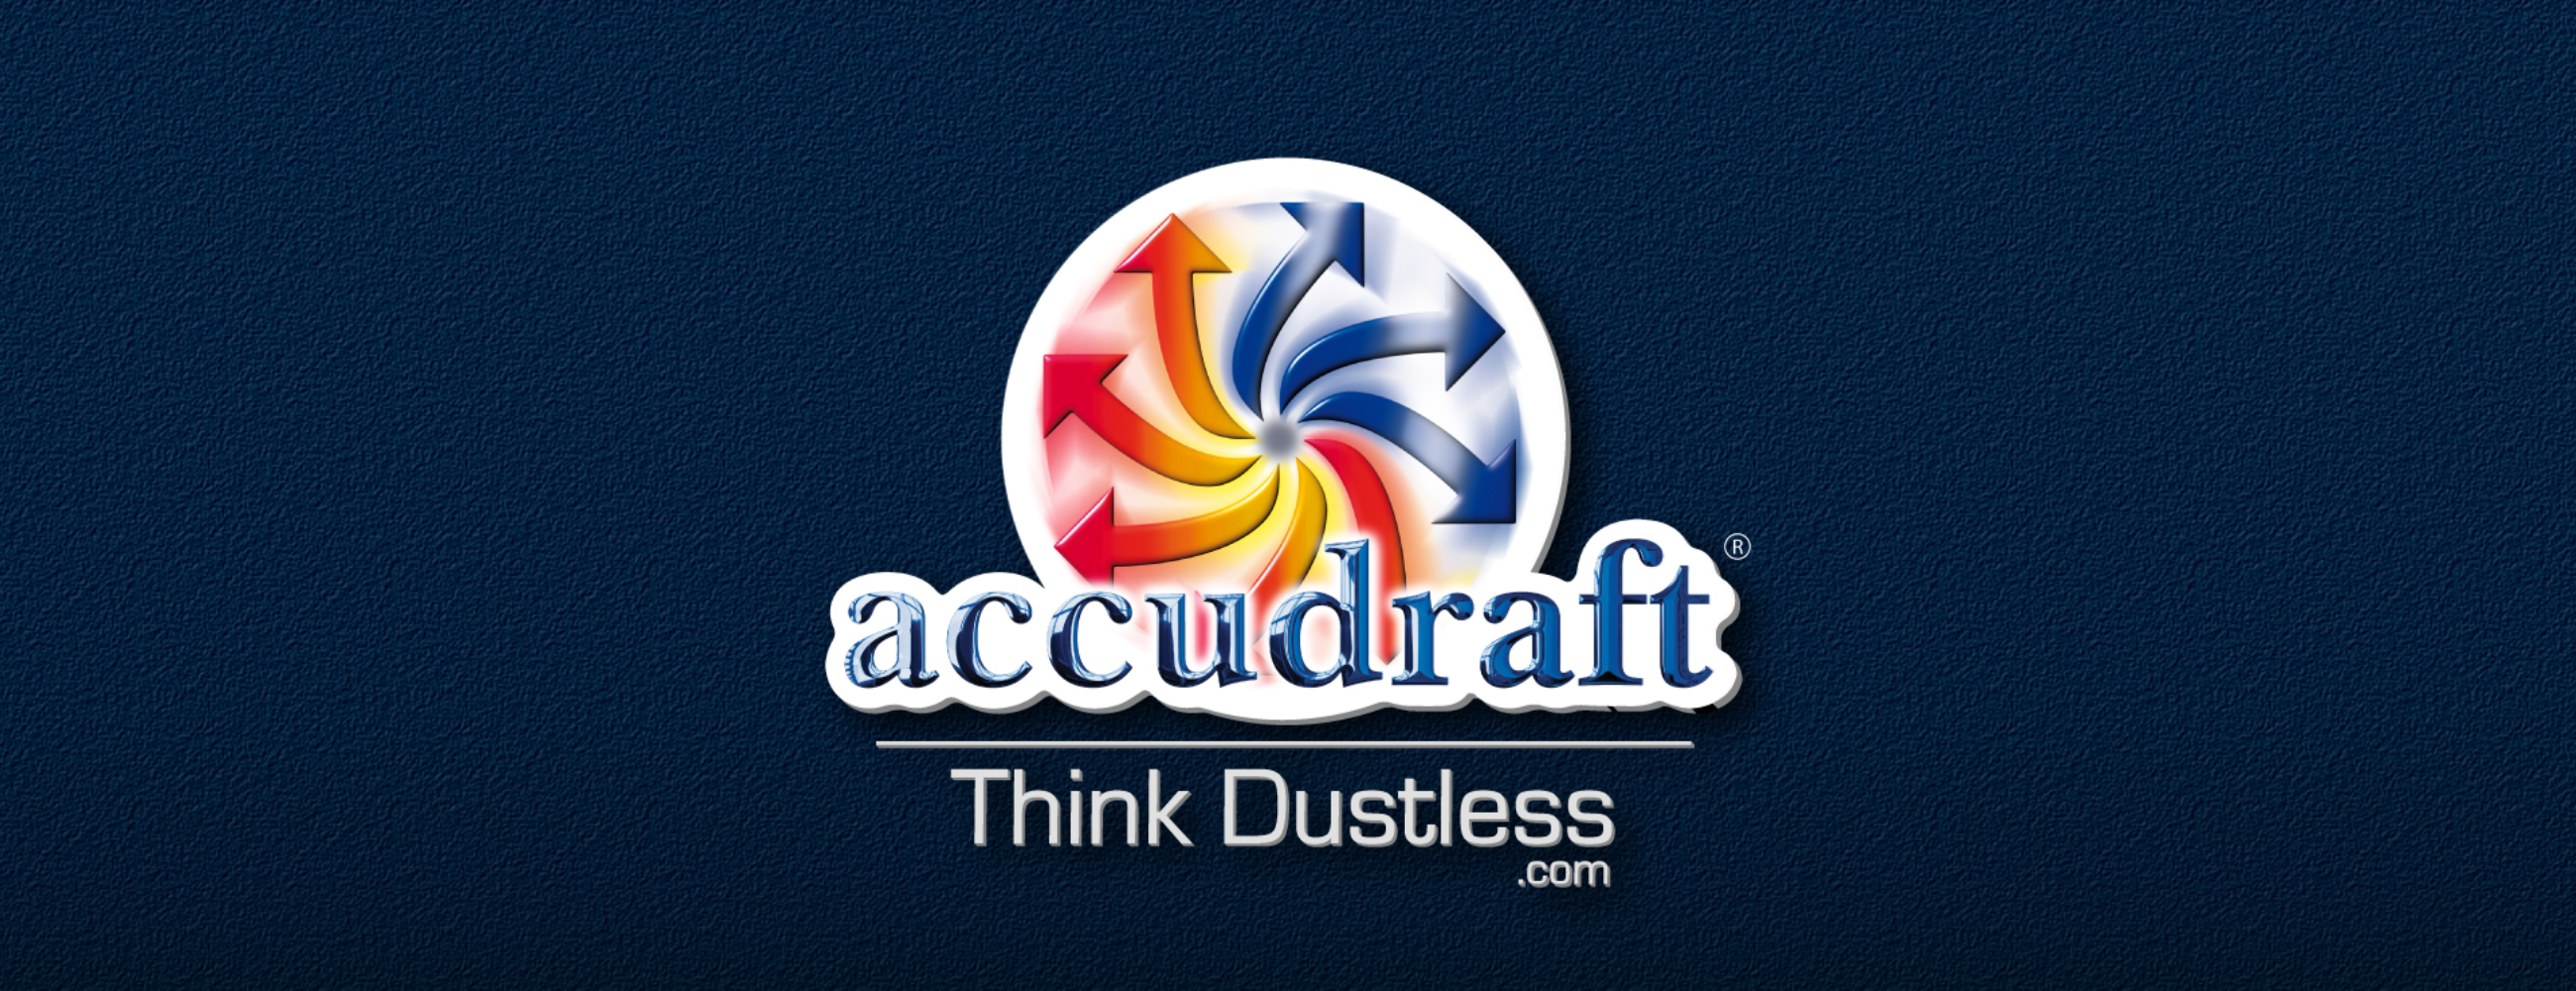 Accudraft Paint Booth Logo